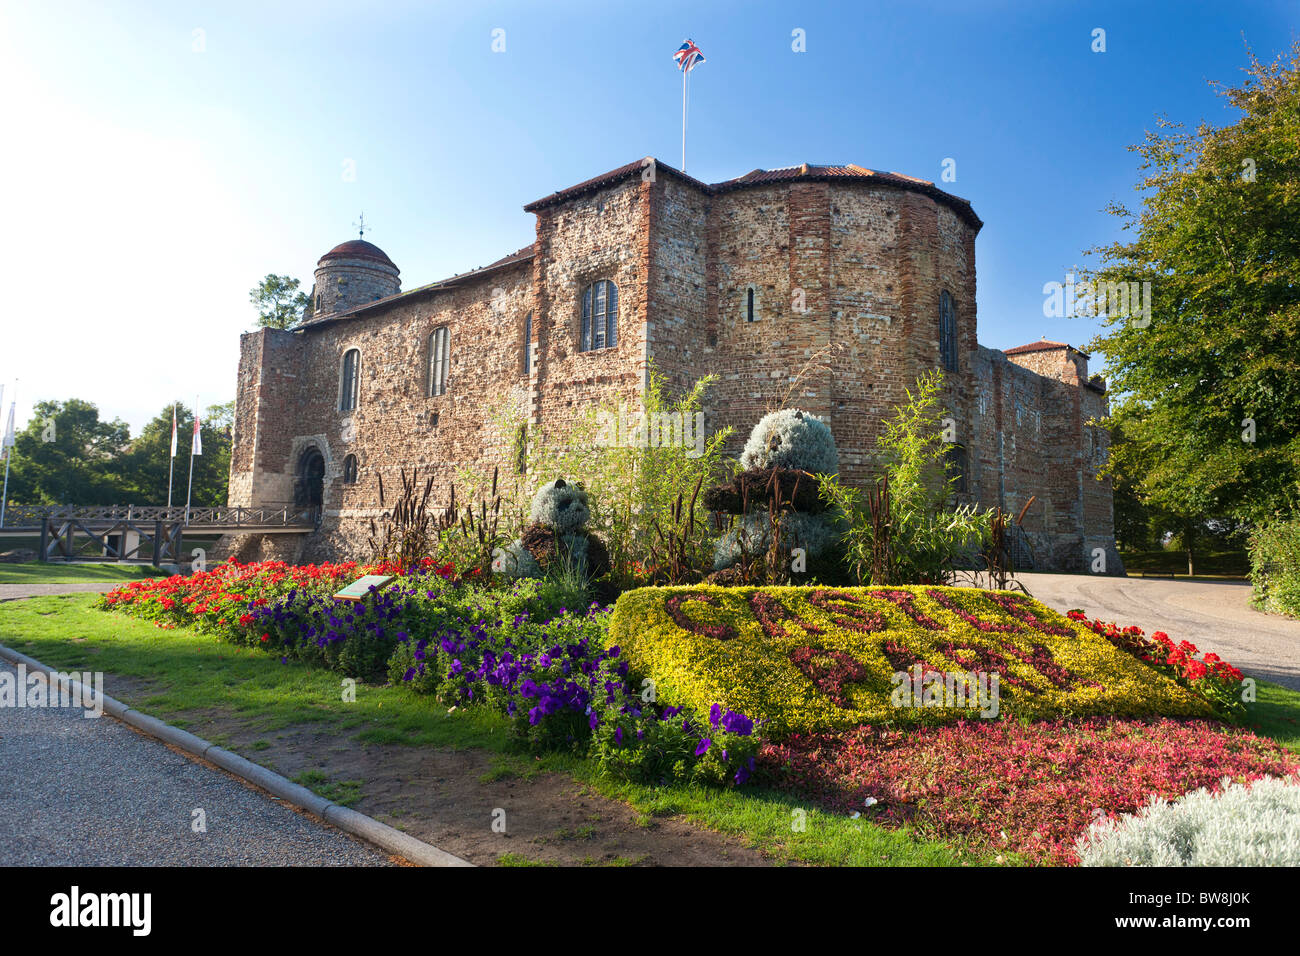 Castle Park in Colchester, Essex, UK - Stock Image